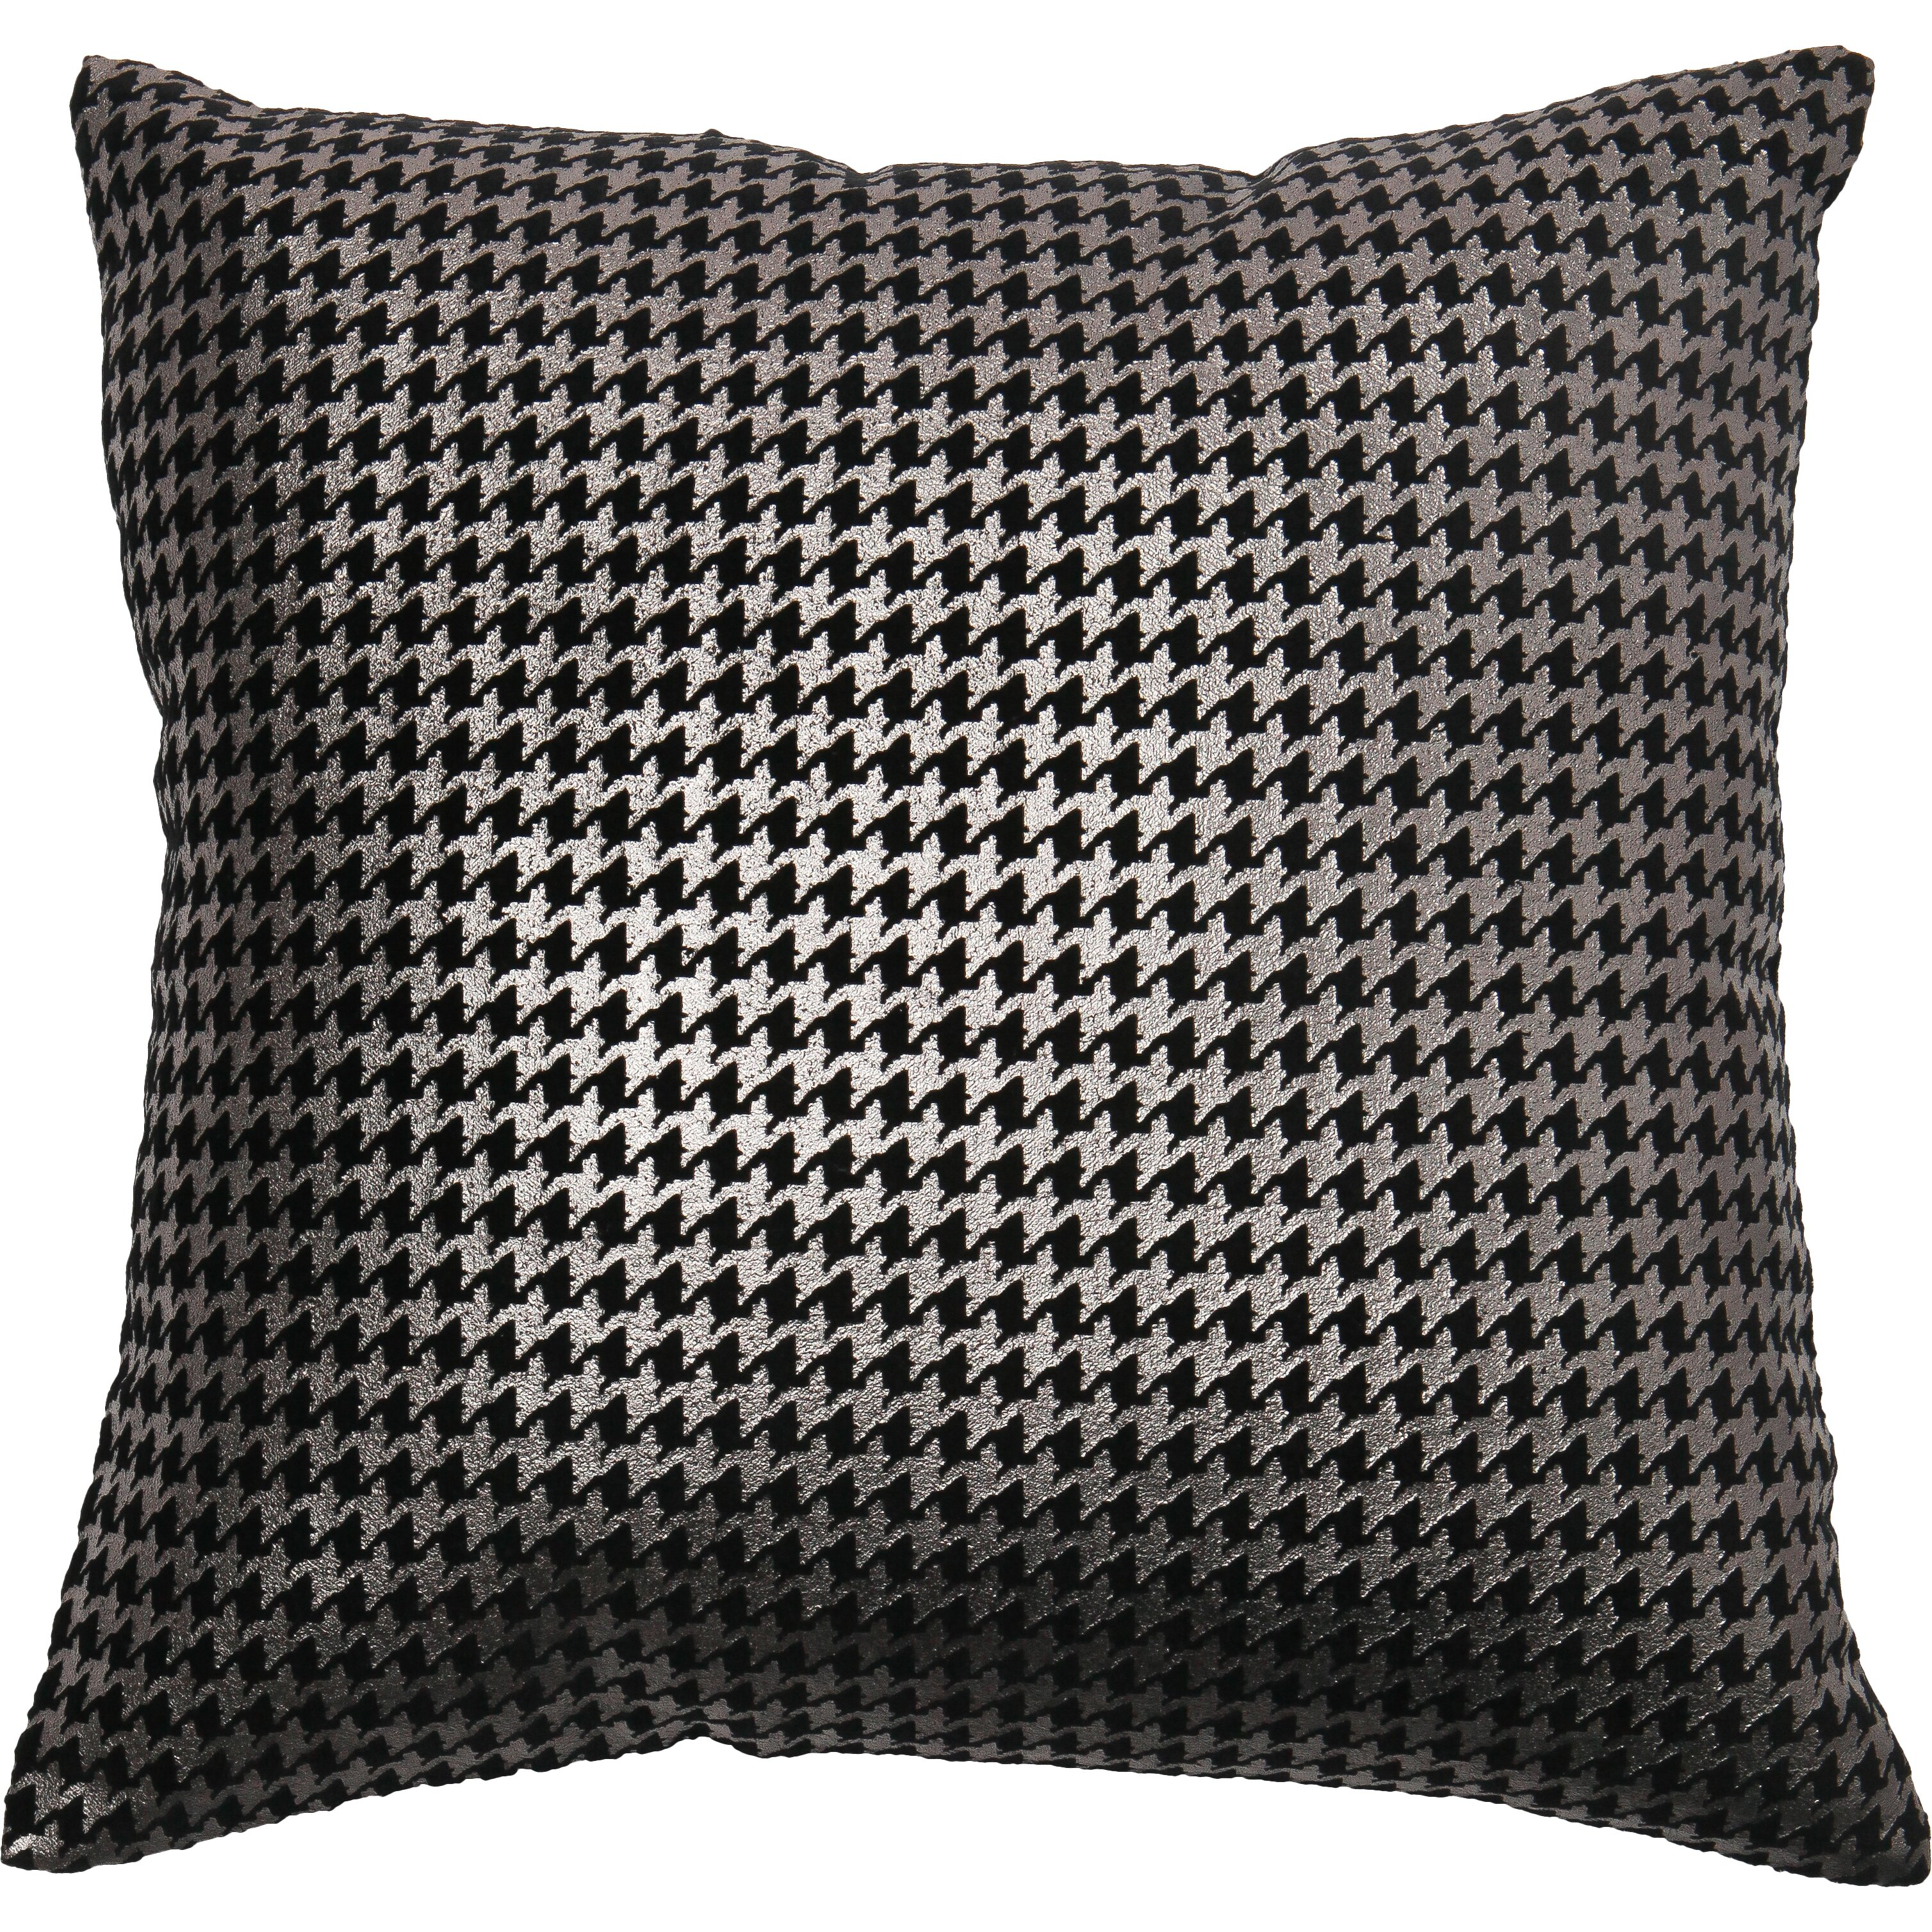 Best Throw Pillow Covers : Best Home Fashion, Inc. Houndstooth Throw Pillow Cover Wayfair